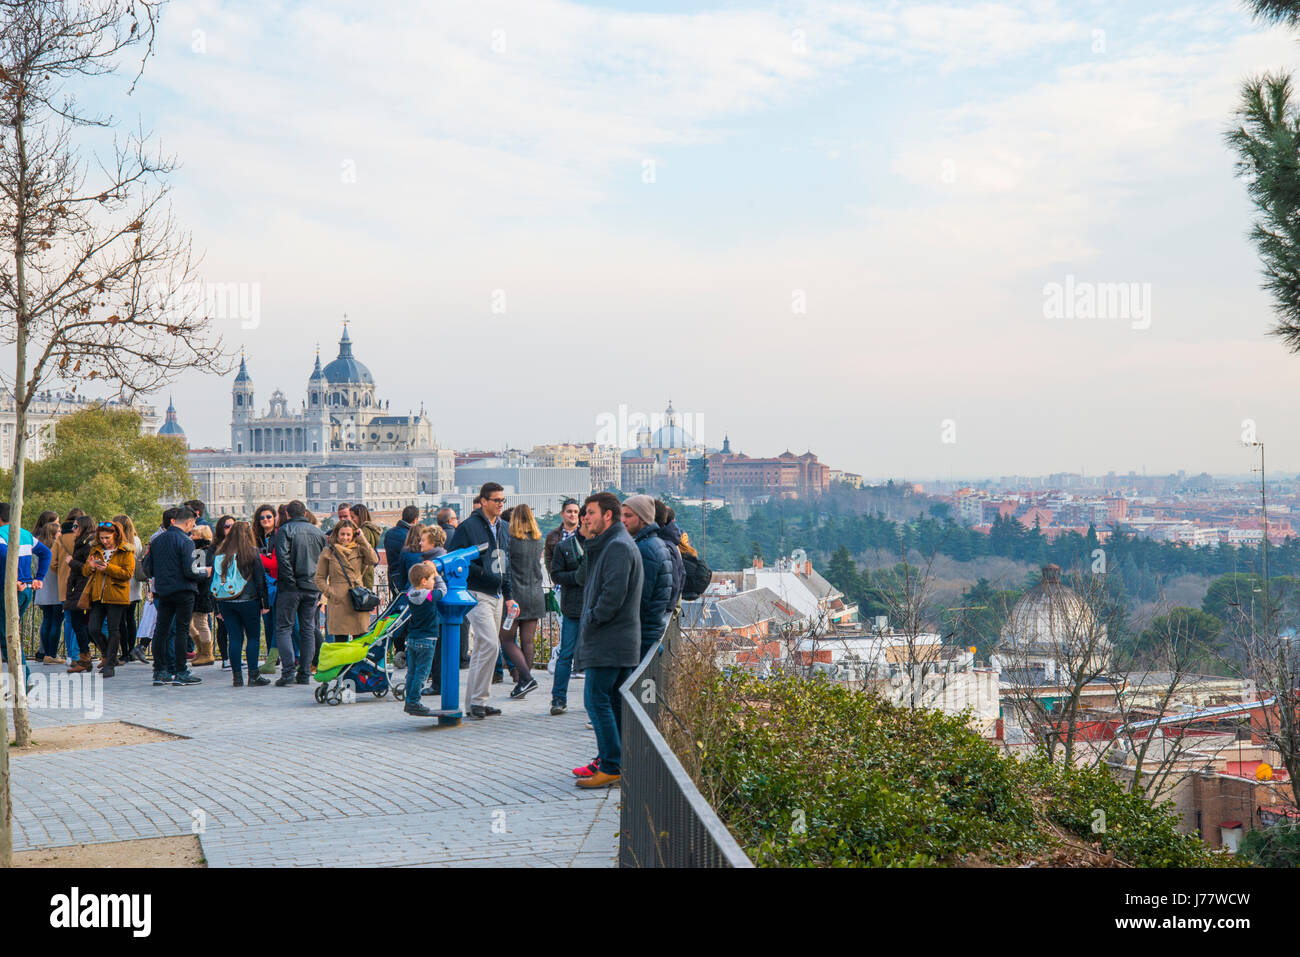 People at the viewpoint. Debod Temple, Madrid, Spain. - Stock Image